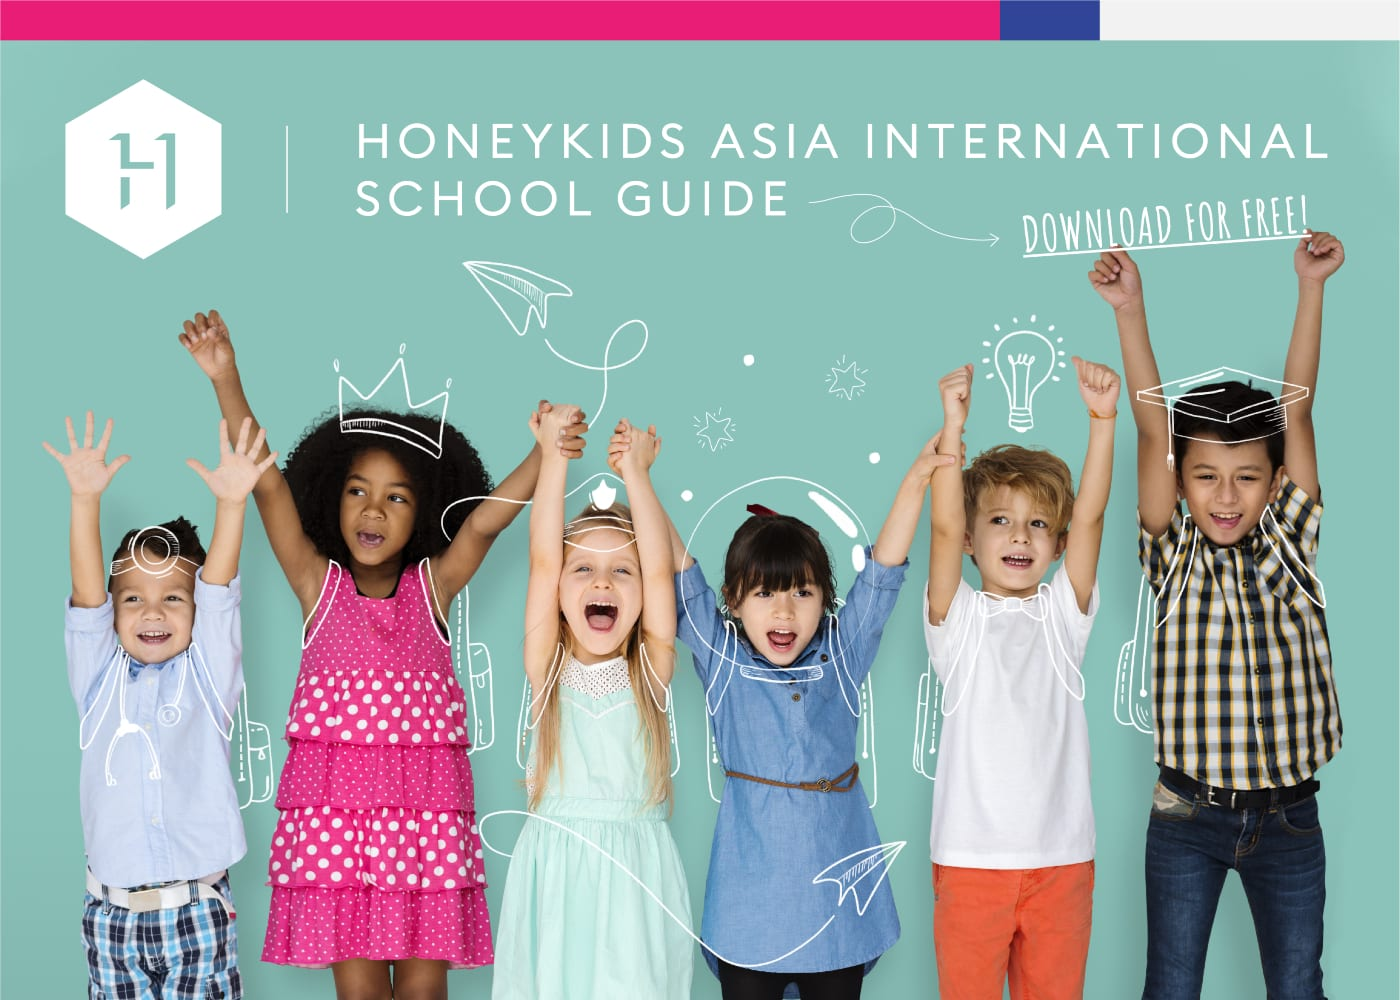 FREE PDF: The HoneyKids guide to international schools